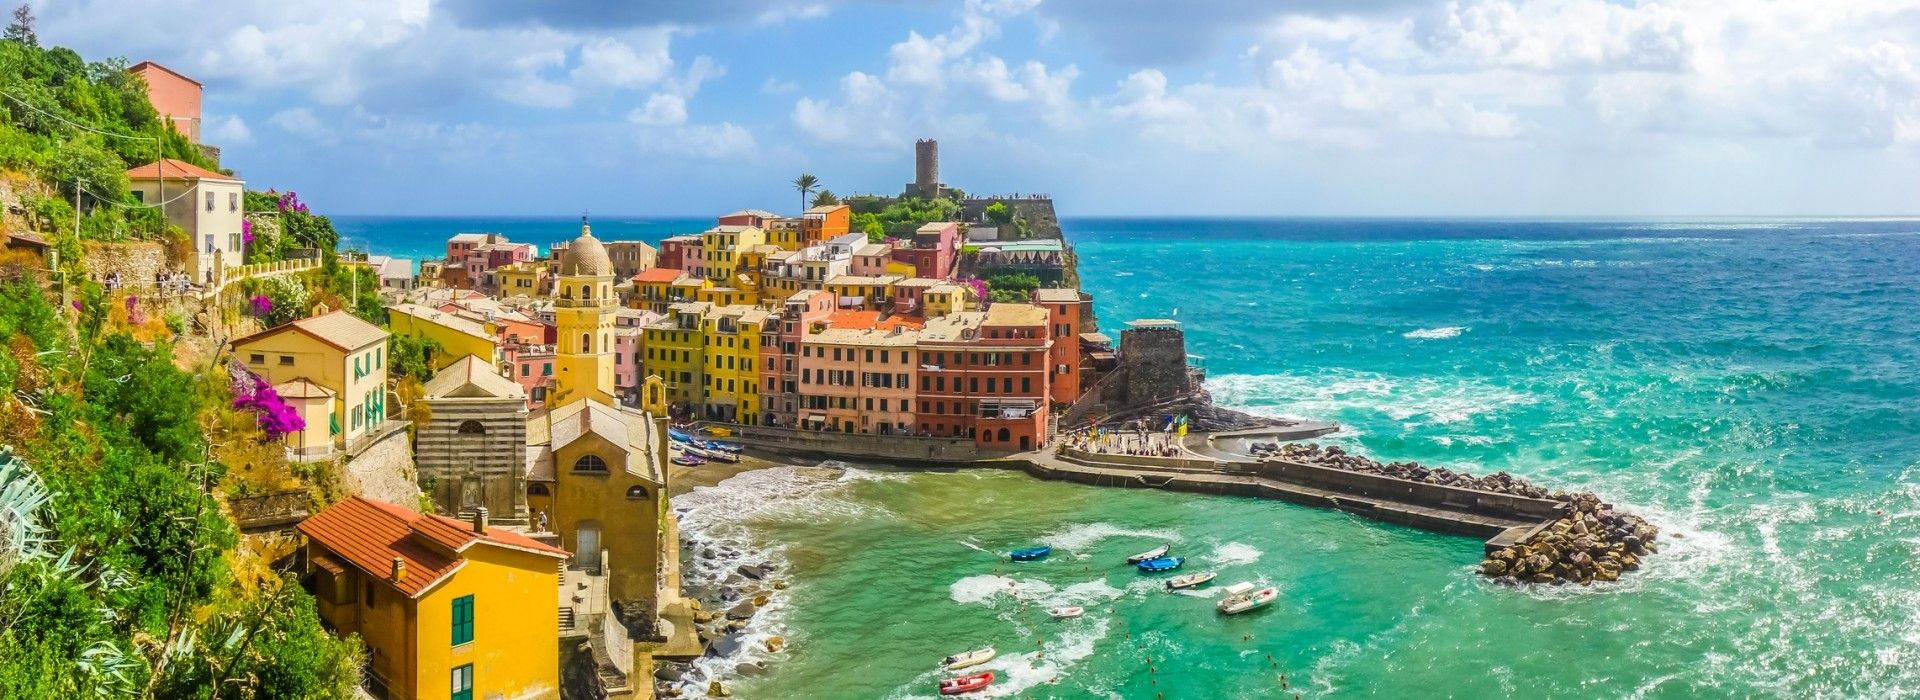 Sightseeing, attractions, culture and history Tours in Liguria